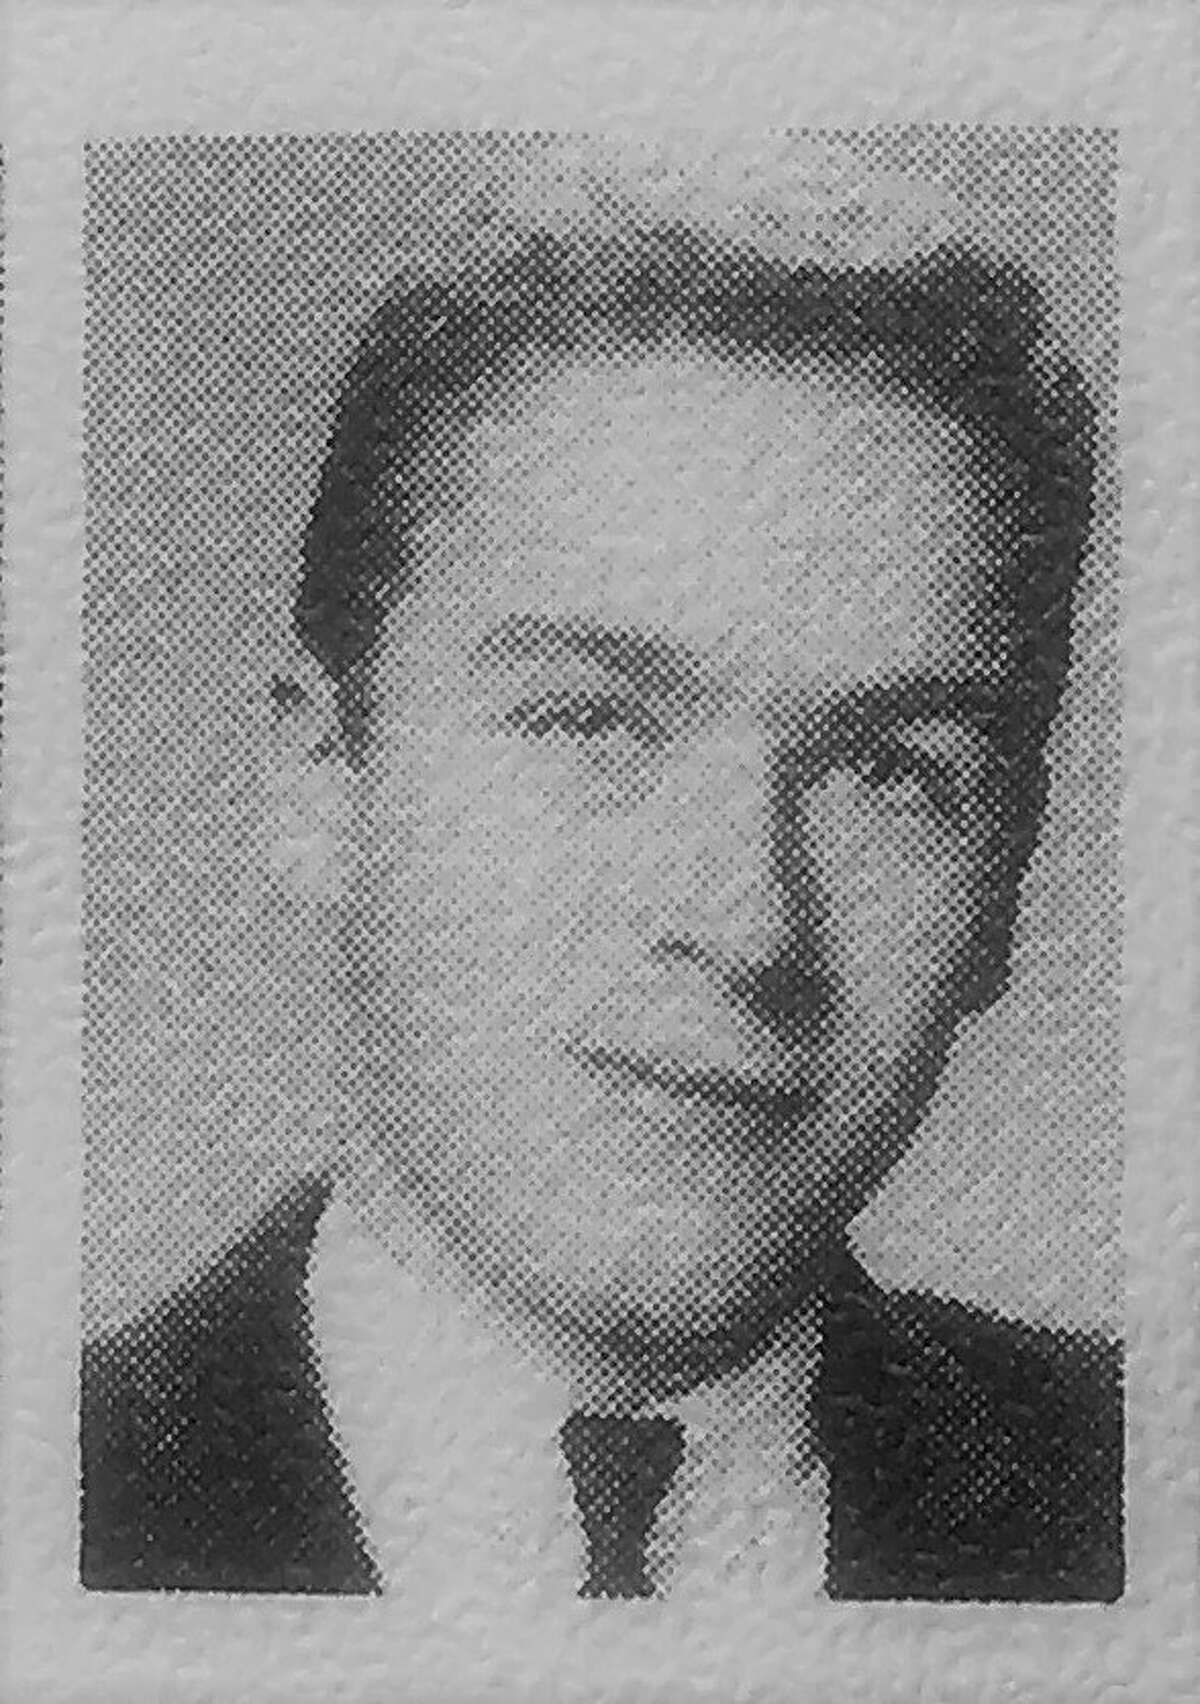 A yearbook photo of Ted Bundy in his junior year 1964 at Wilson High School in Tacoma.